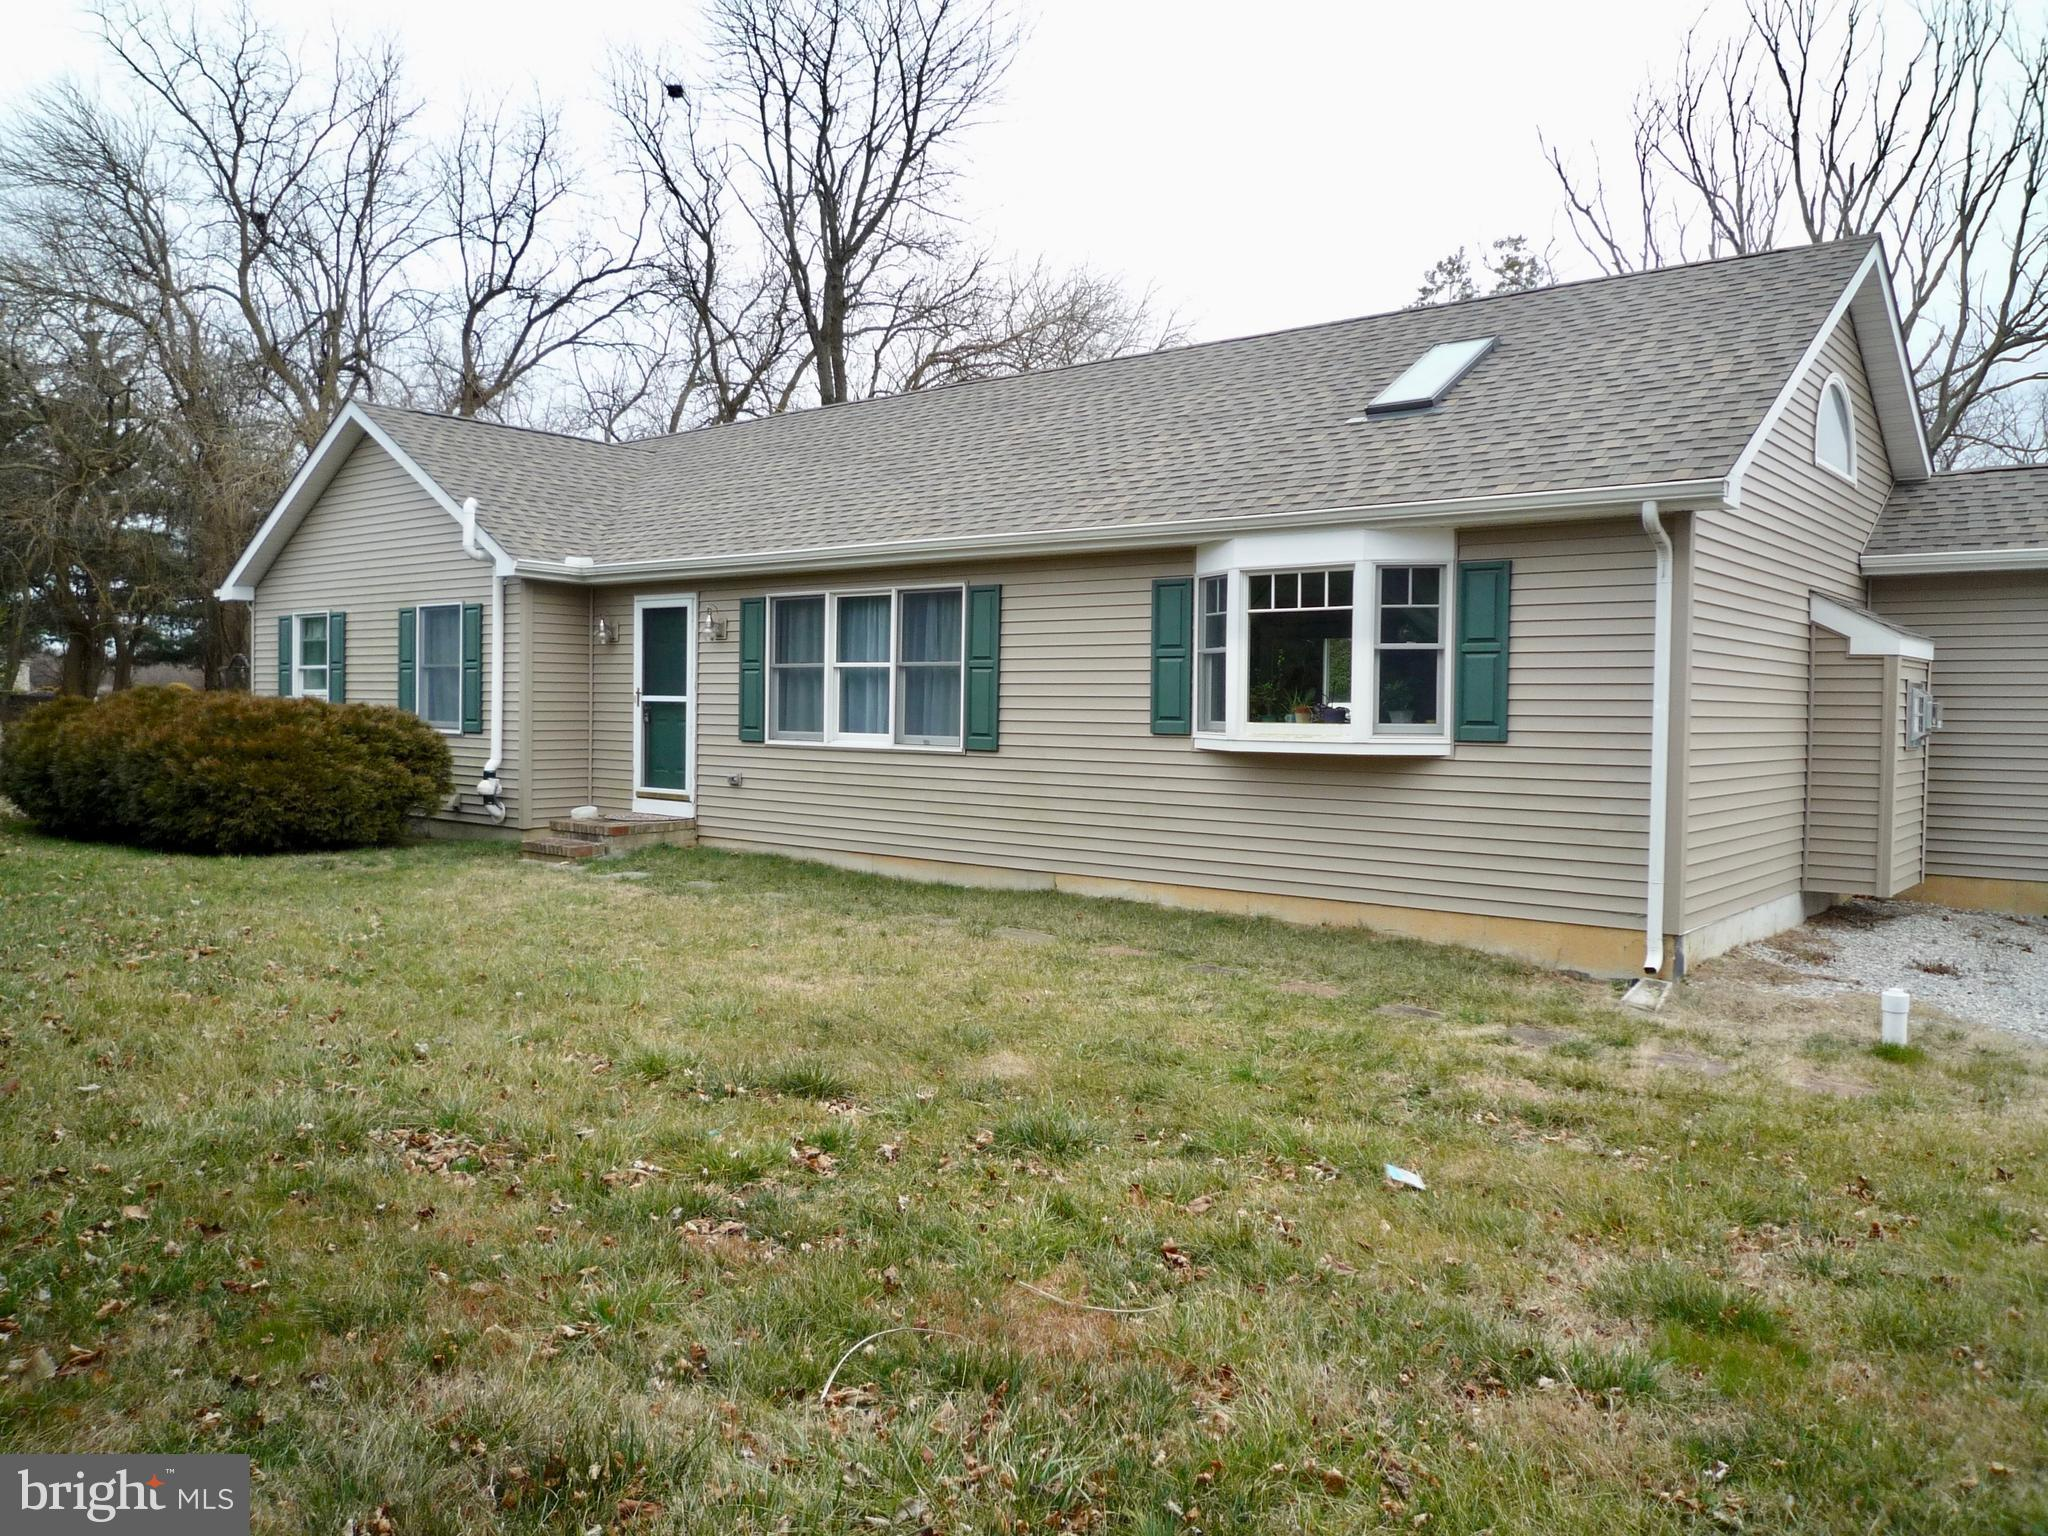 Priced $10,000 below appraised value on 3/3/20 (Full appraisal available on MLS).  This well maintained & updated 4Br/2.5 Ba Ranch home is ready for its new owner!  New Architectural Roof in 2016 and maintenance free vinyl siding adds peace of mind to minimal future exterior maintenance costs!  Entry at the front door opens to the home's Dining Room with open views of the Kitchen and new Living Room addition just completed in 2016! Updated Laminate flooring runs seamlessly between the Dining Room & Kitchen.  Fresh neutral paint & great natural light throughout! The Kitchen features plenty of cabinet storage, updated granite counters, extra counter & deep 6-drawer cabinet storage were added along the open wall  providing loads of additional storage & countertop space!  Convenient sliding doors lead out the the deck overlooking the backyard.  The main focal point of this main floor layout is the amazing Living Room addition just completed in 2016!  This 25x16 room (with split system heat/air control) boasts tons of light & space featuring cathedral ceiling with sky lights, a bay window, ceiling fan, neutral plush carpet, custom gas fireplace with stone surround & chunky reclaimed wood mantel and a unique display shelf across the length of the room w/ crown molding decor!  The convenient main floor Laundry Room is just off the Living Room. Moving back to the Bedrooms on the main floor, there is a good sized Master Bedroom featuring double closet storage, ceiling fan, neutral carpet & a private Master Bathroom offering vinyl flooring, stall shower & vanity sink.  The 2nd main floor bedroom is also neutral & offers ceiling fan and double closet storage with easy access the the full bath in the hallway.  Downstairs you will find loads of additional living space starting with 2 large open finished areas that create a great Family Room space for both day to day or entertaining! There are 2 additional bedrooms and a convenient power room in the lower level as well!  Conveniently located near major routes 13/1 & 72 offering an easy commute to loads of shopping, dining & entertainment options! Just minutes to the Christiana Mall and Christiana Hospital as well as historic town of St George's , Delaware City & the Fort DuPont State Park overlooking the Delaware River!  Put this great home on your next tour!  See it!  Love it!  Buy it!